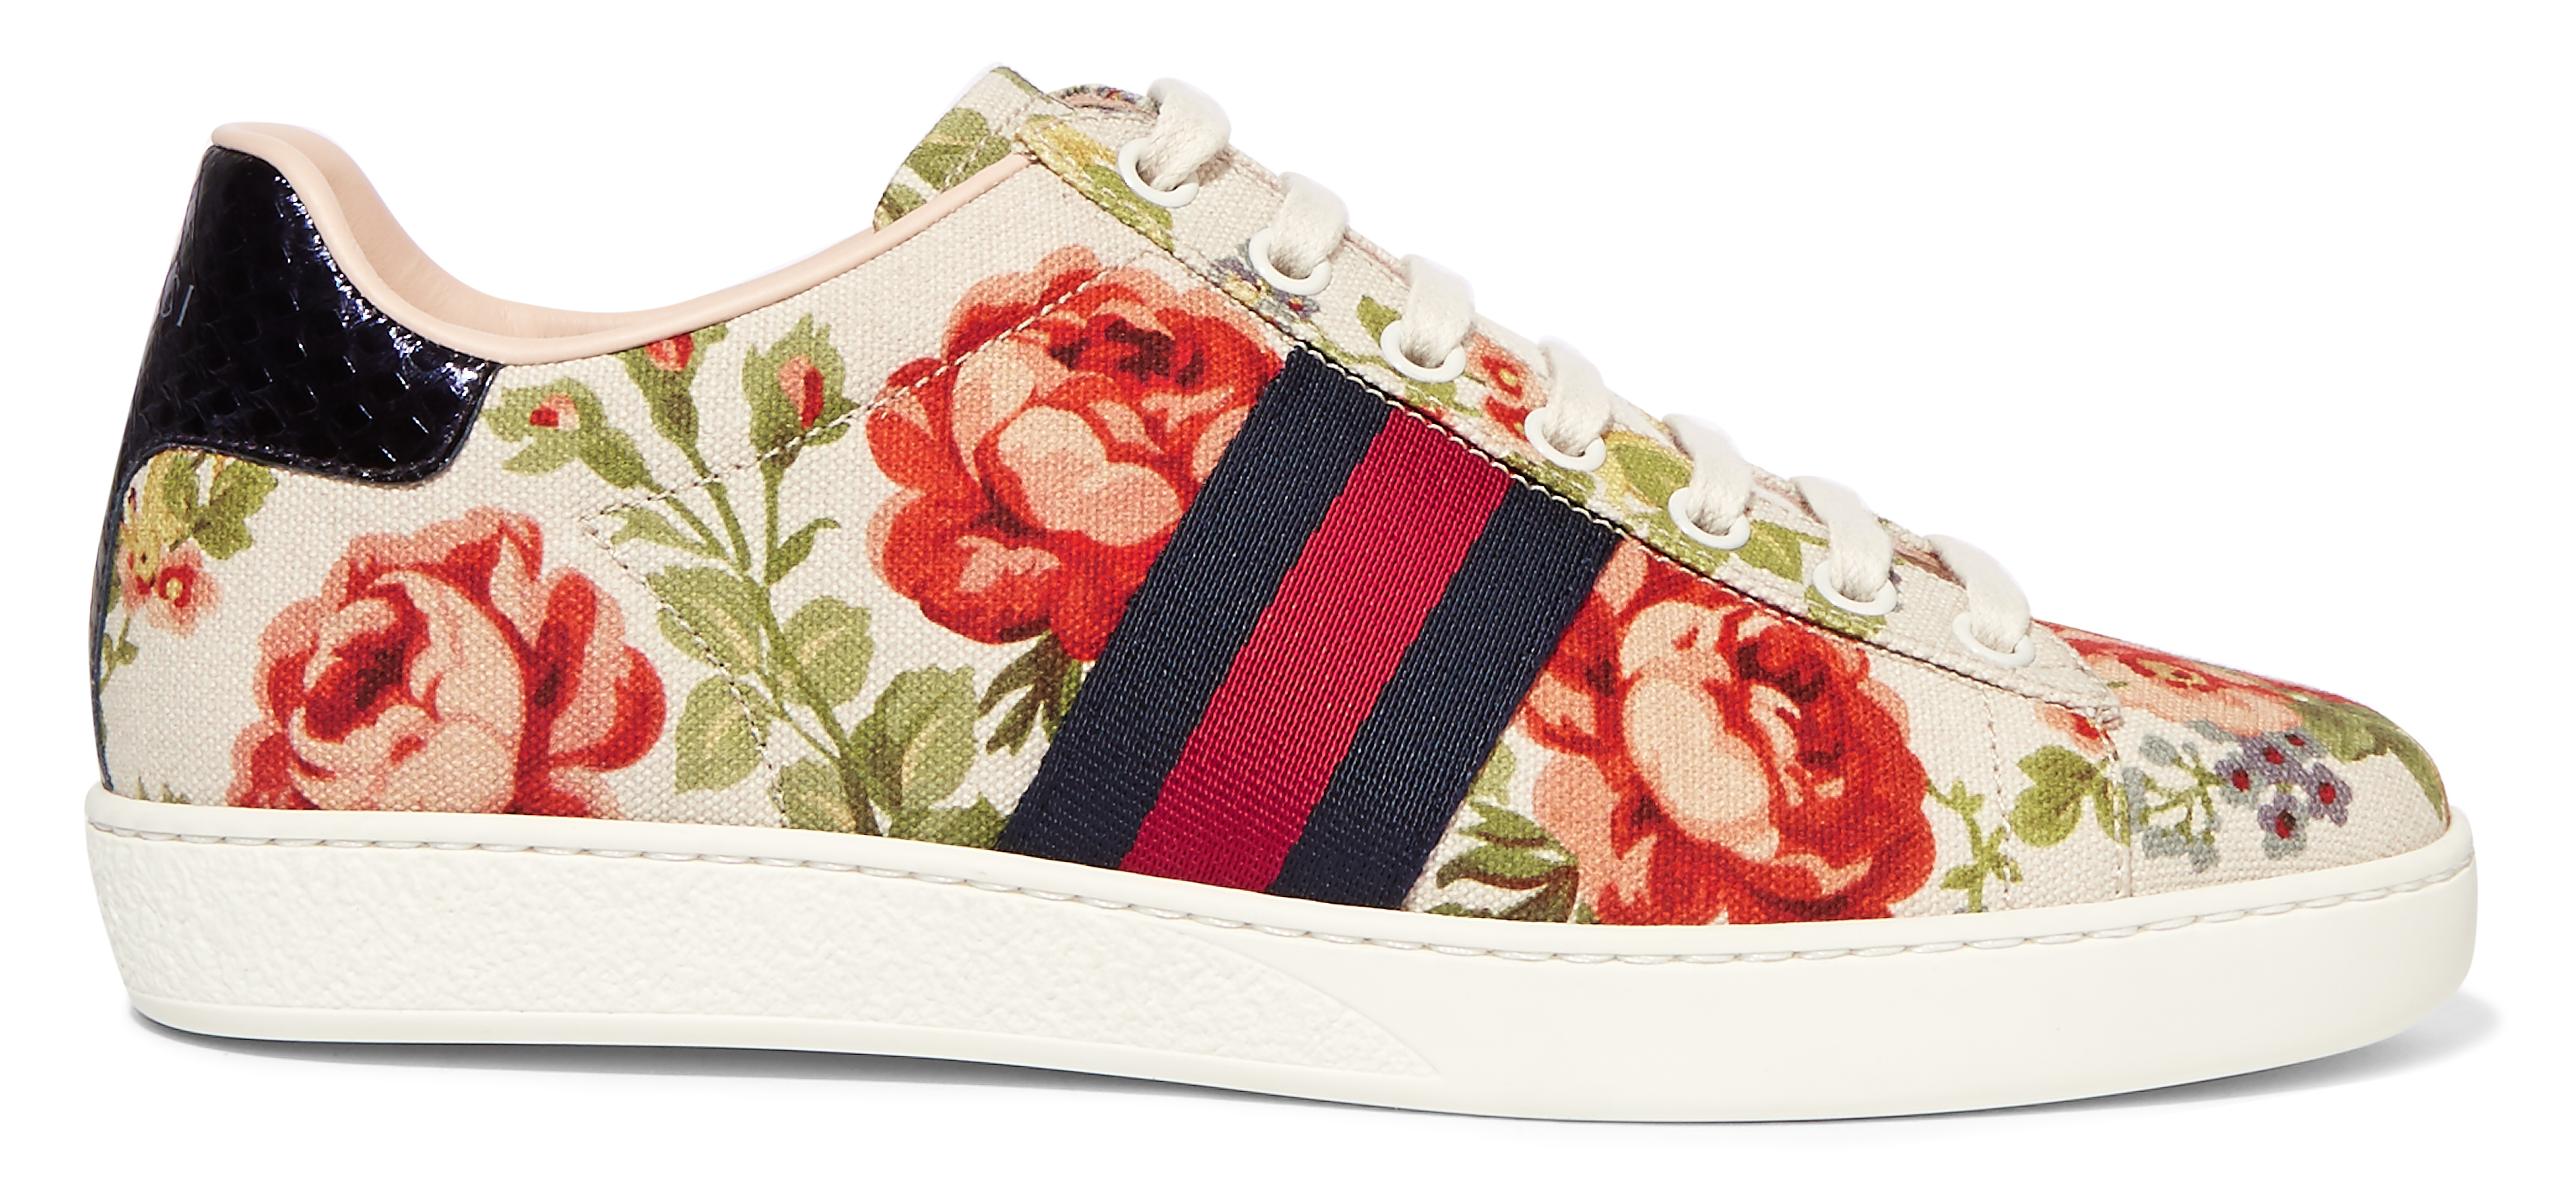 Your First Look At Guccis Exclusive New Capsule Collection For Net A Porter